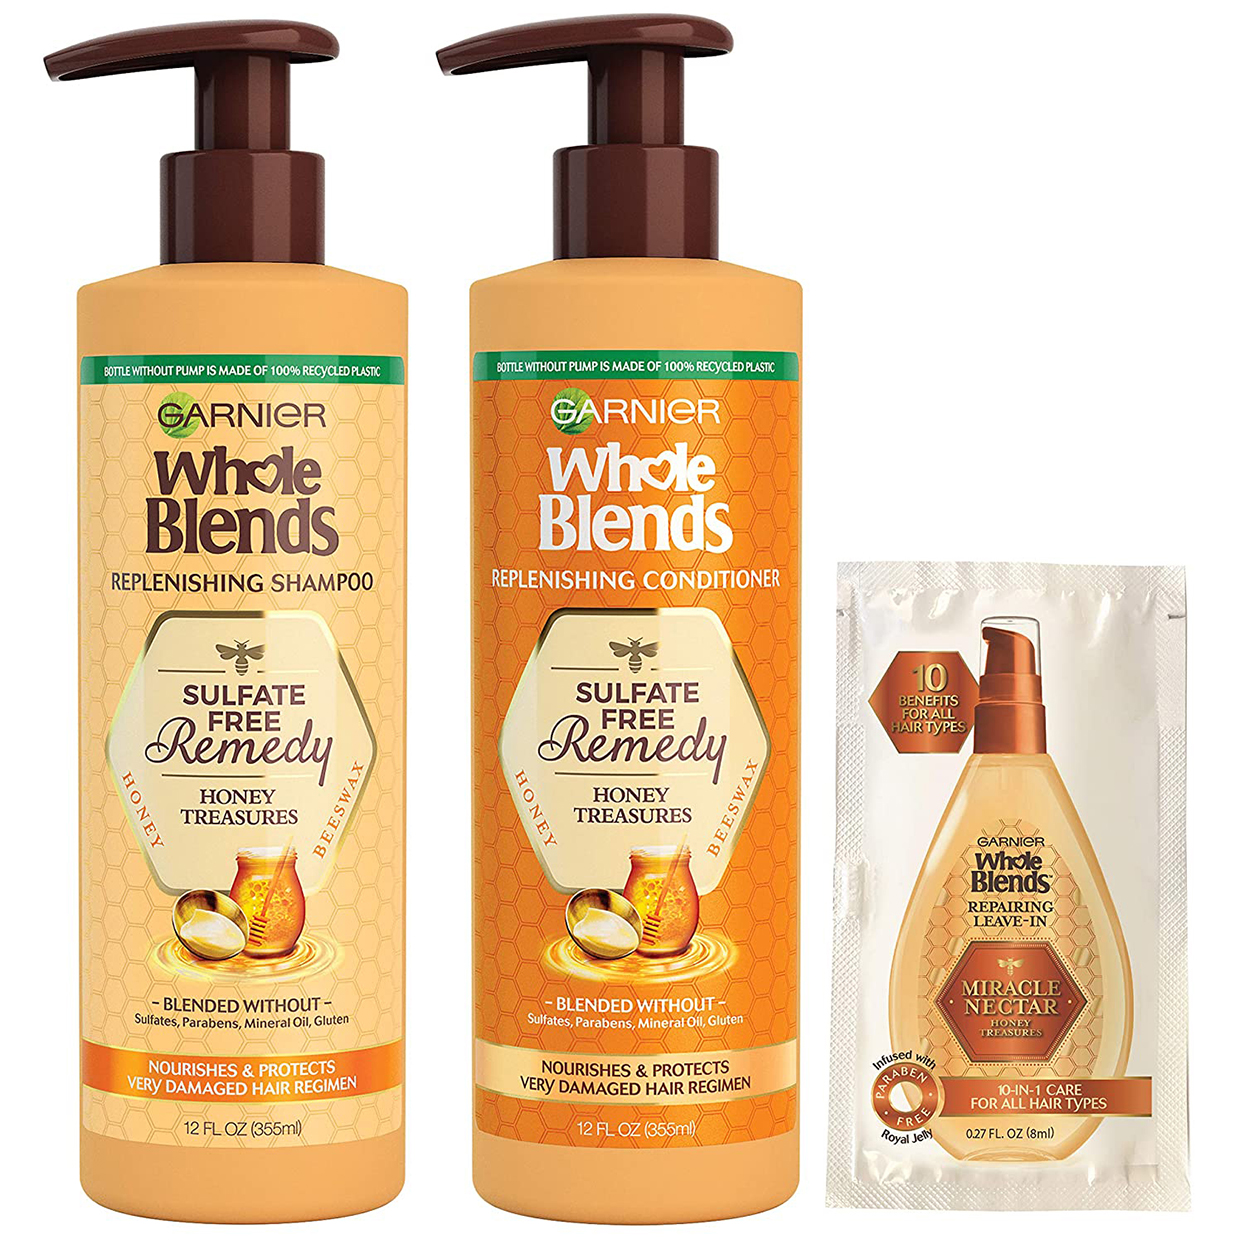 Garnier Whole Blends Sulfate-Free Remedy Honey Treasures Replenishing Shampoo and Conditioner,